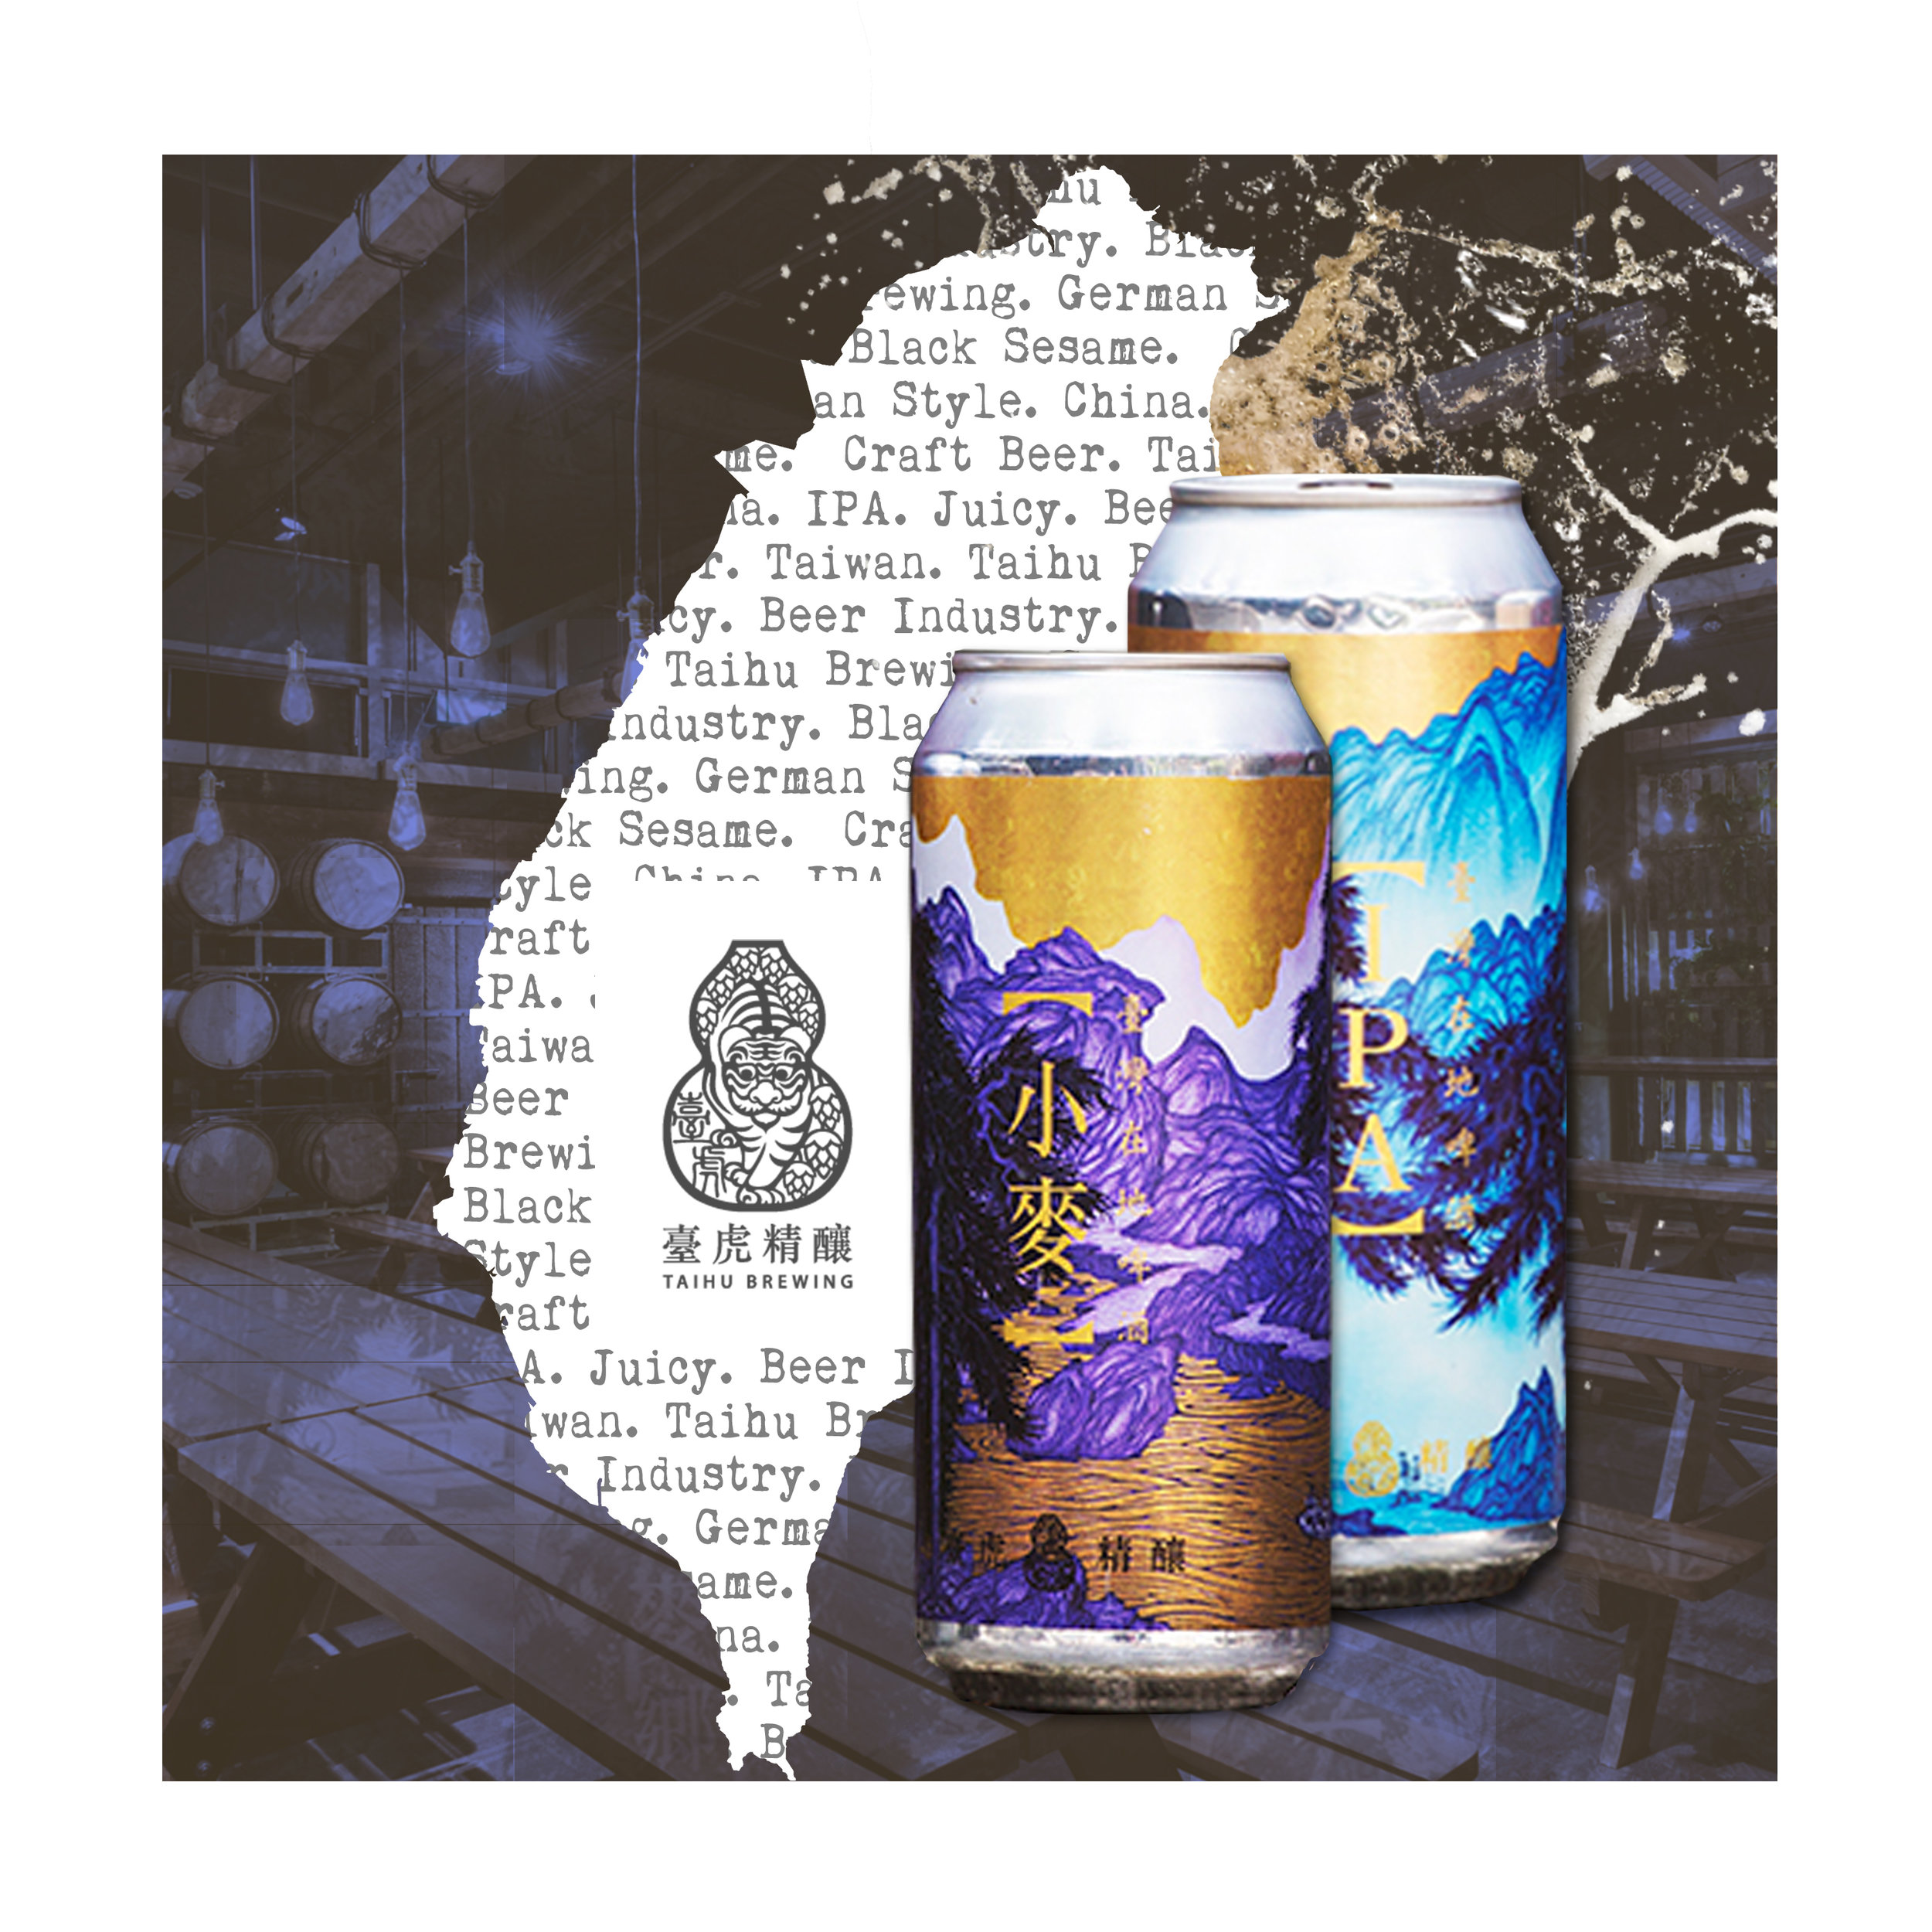 - We wanted to sculpt the landscape of craft beer in Taiwan